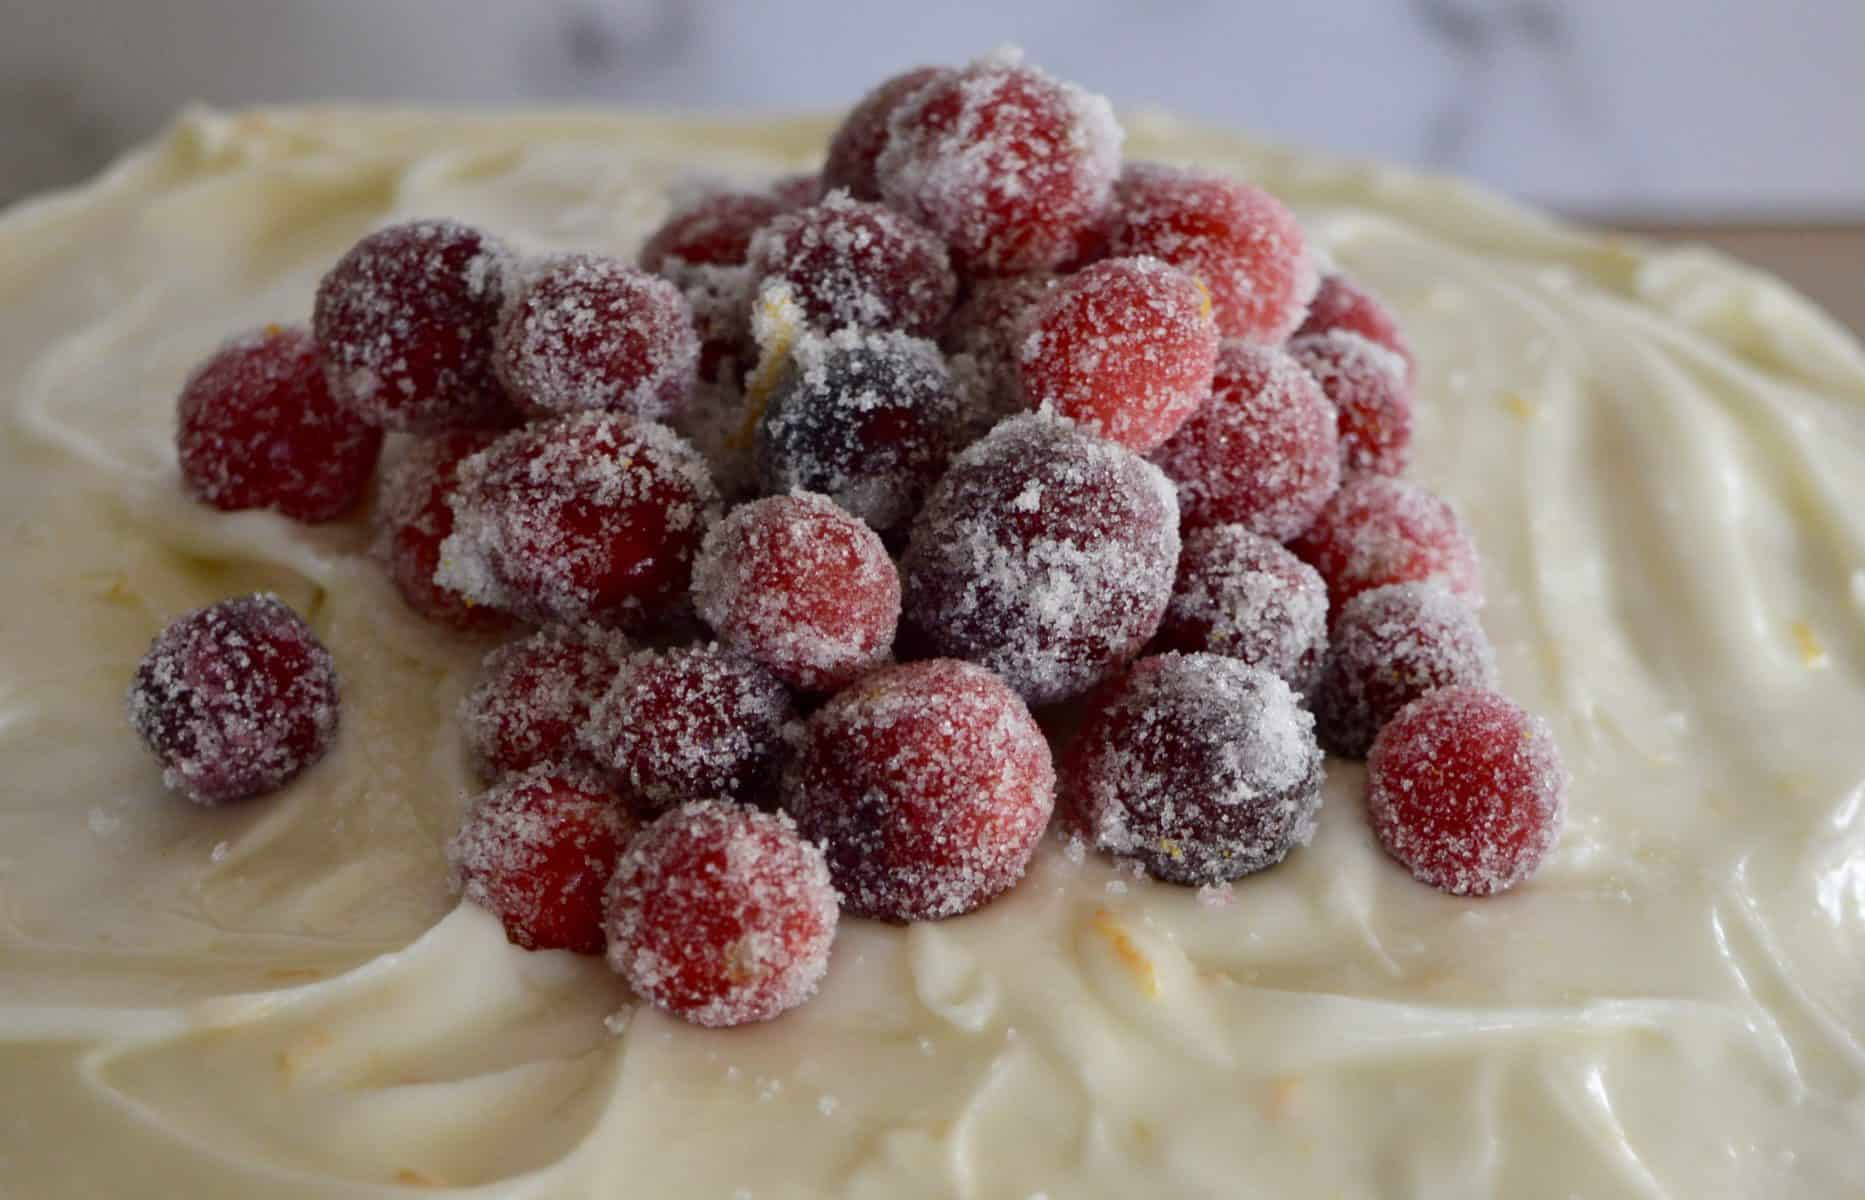 sugared cranberries on top of the frosting.